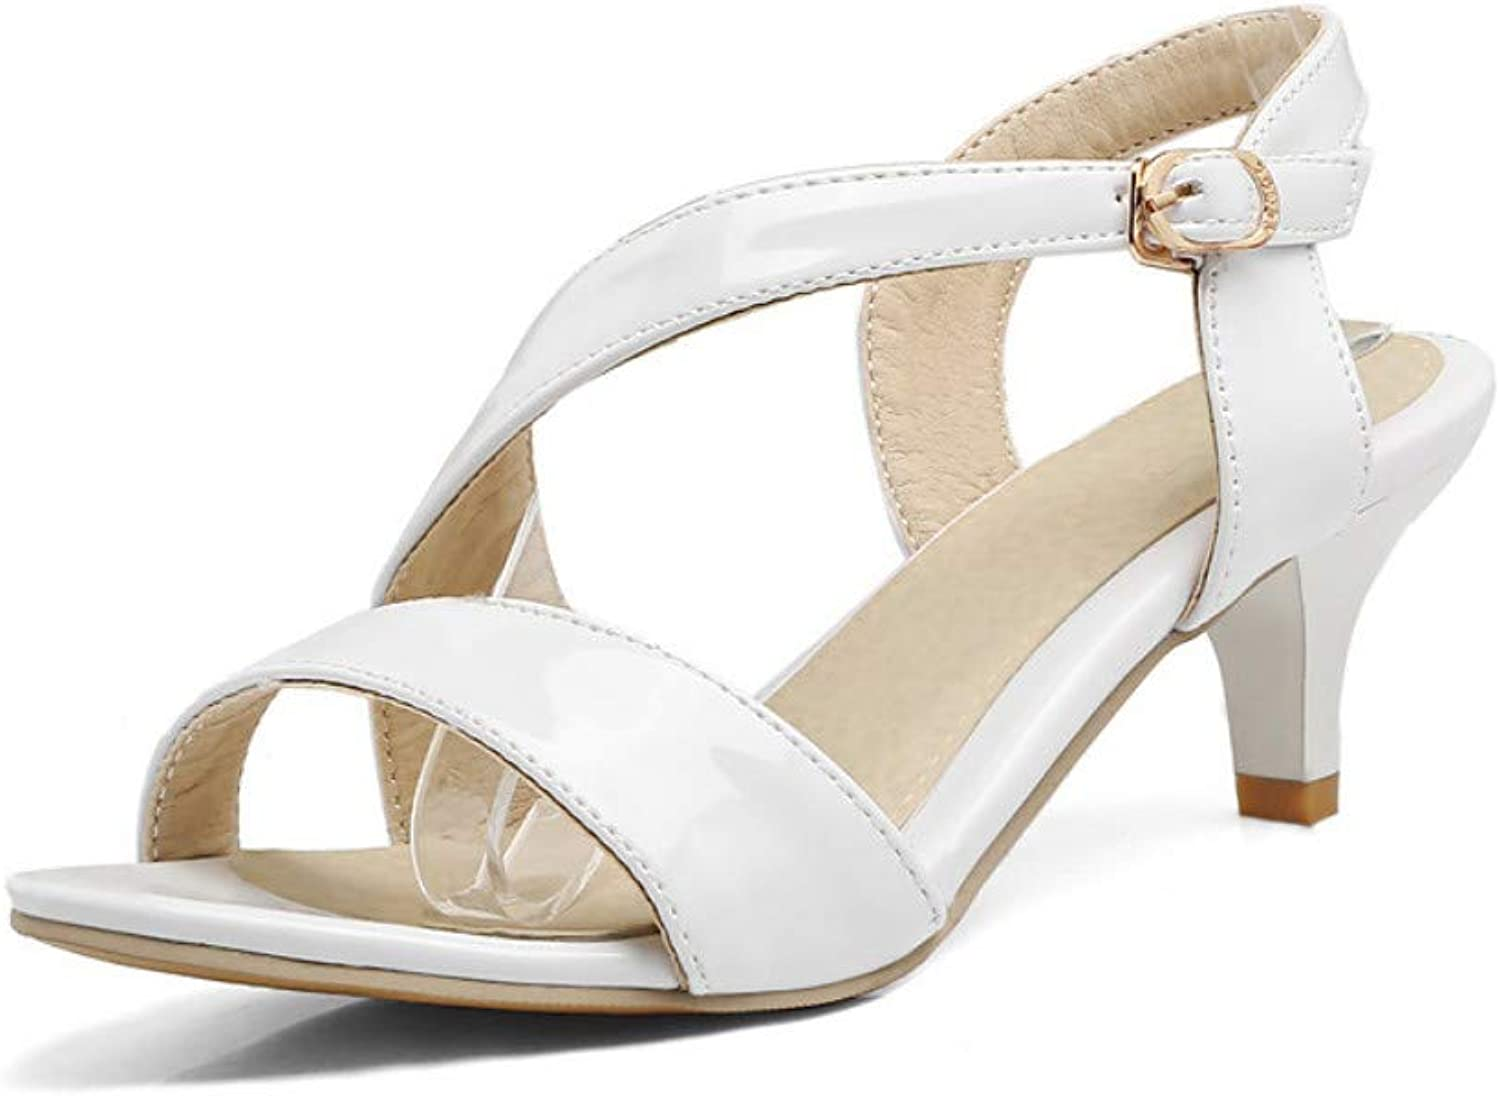 IWlxz Women's shoes PU(Polyurethane) Spring Summer Slingback Sandals Round Toe Buckle White Black Red Party & Evening Party & Evening